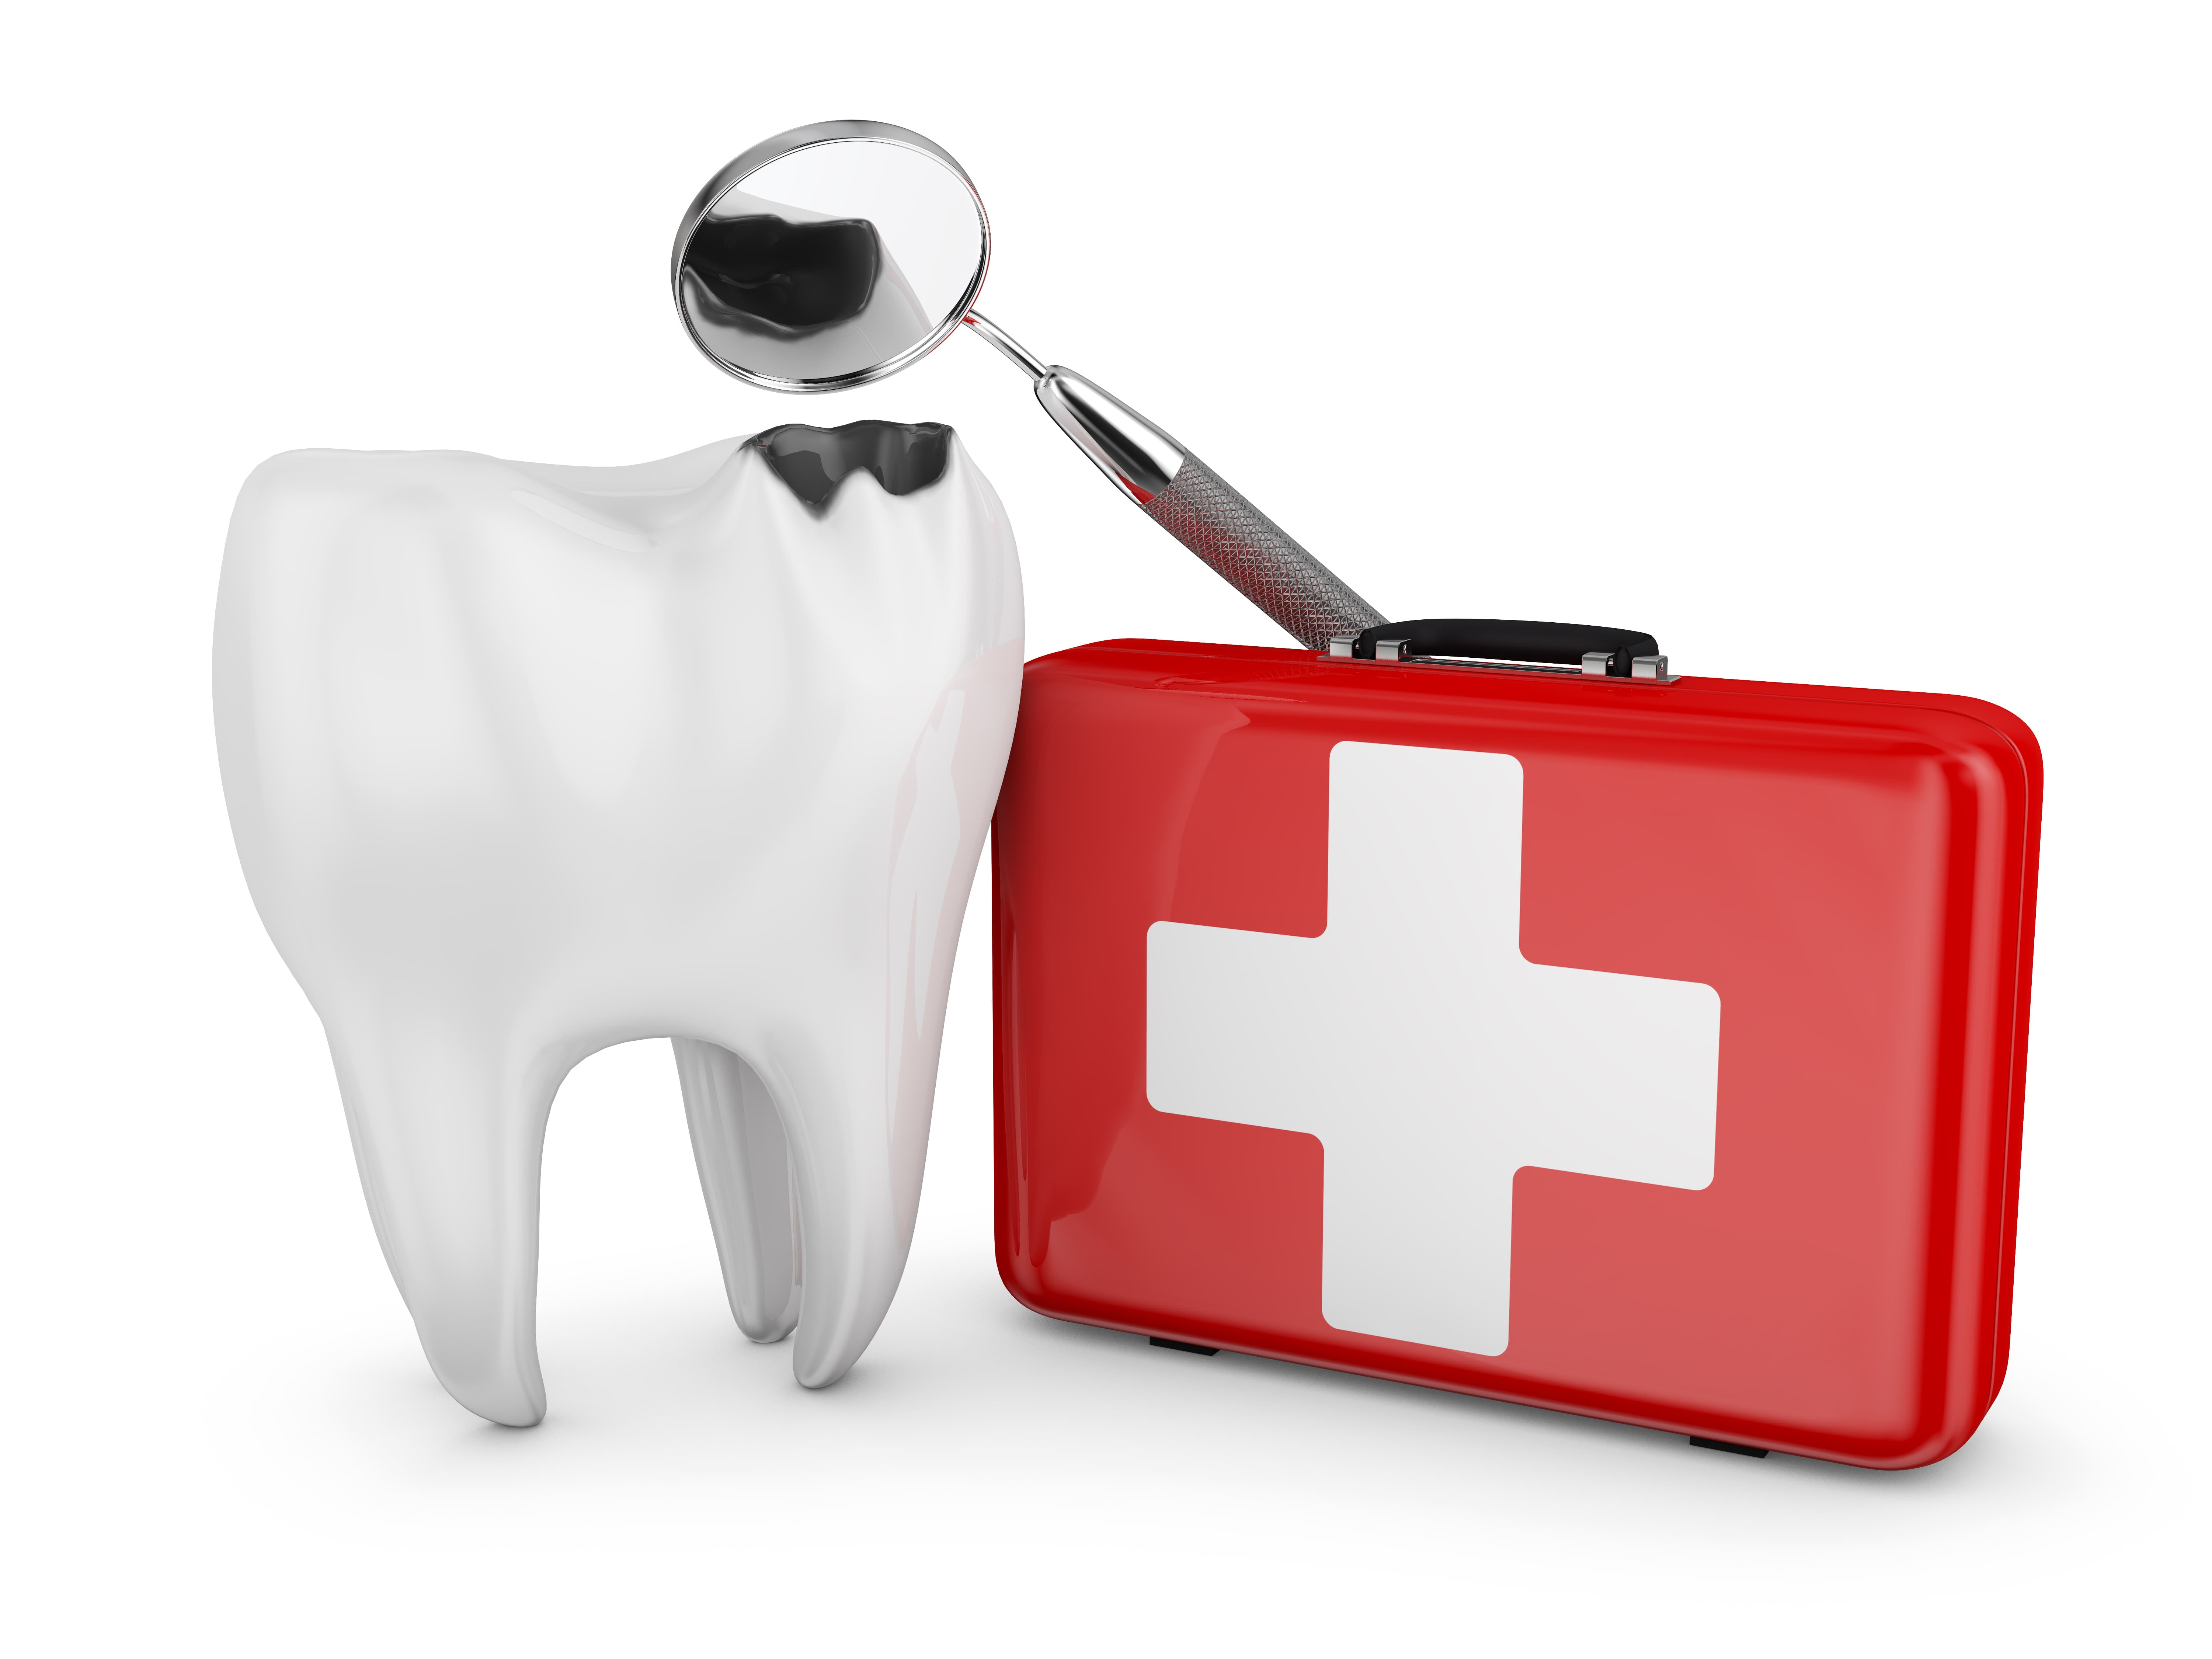 Giant model tooth next to a first aid box